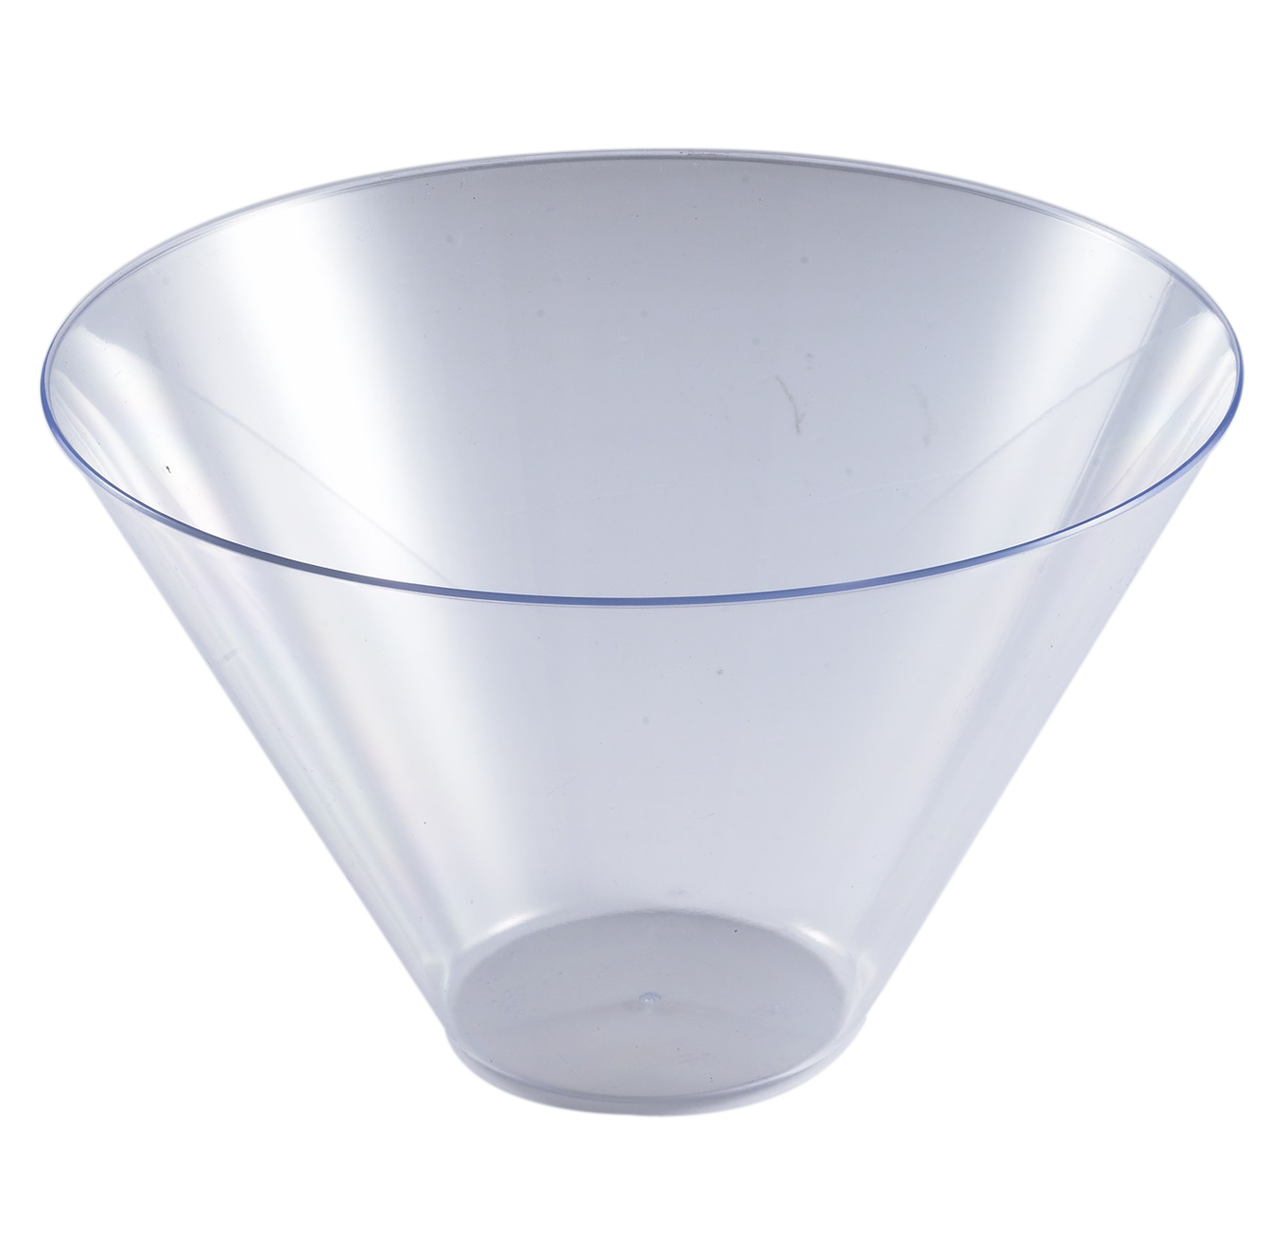 Clear transparent bowl. Oz round serving the